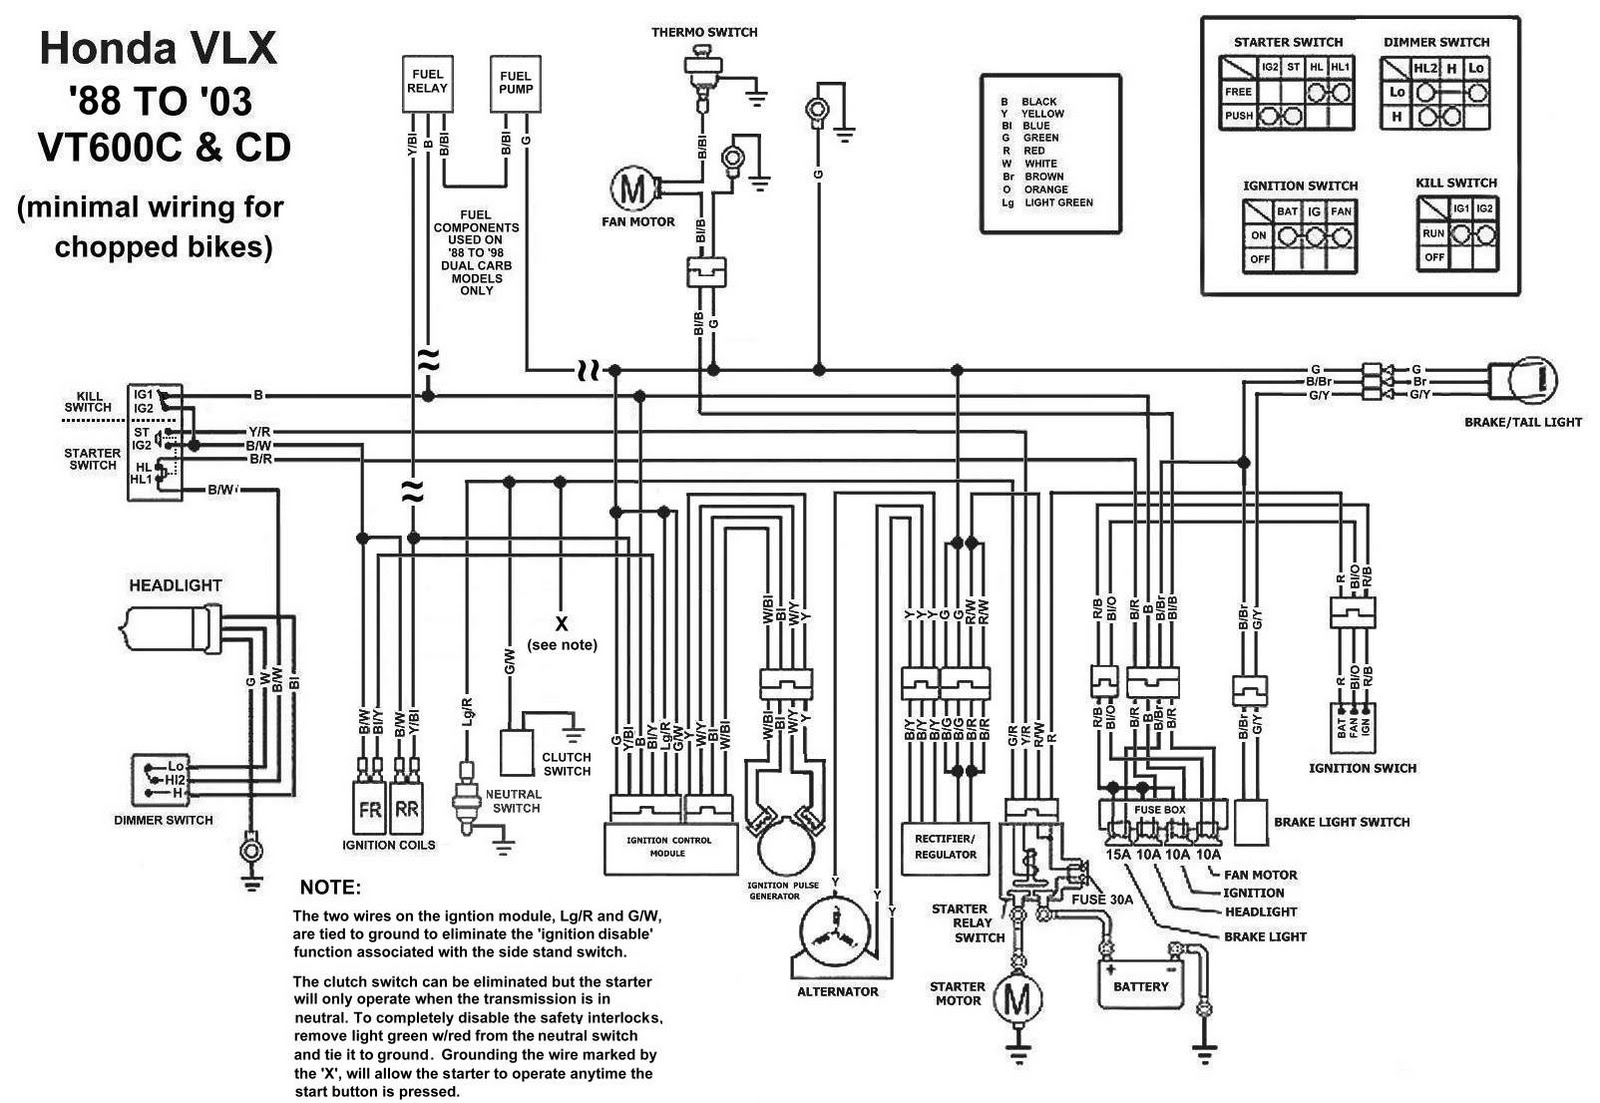 honda tl125 wiring diagram honda shadow wiring diagram honda wiring diagrams